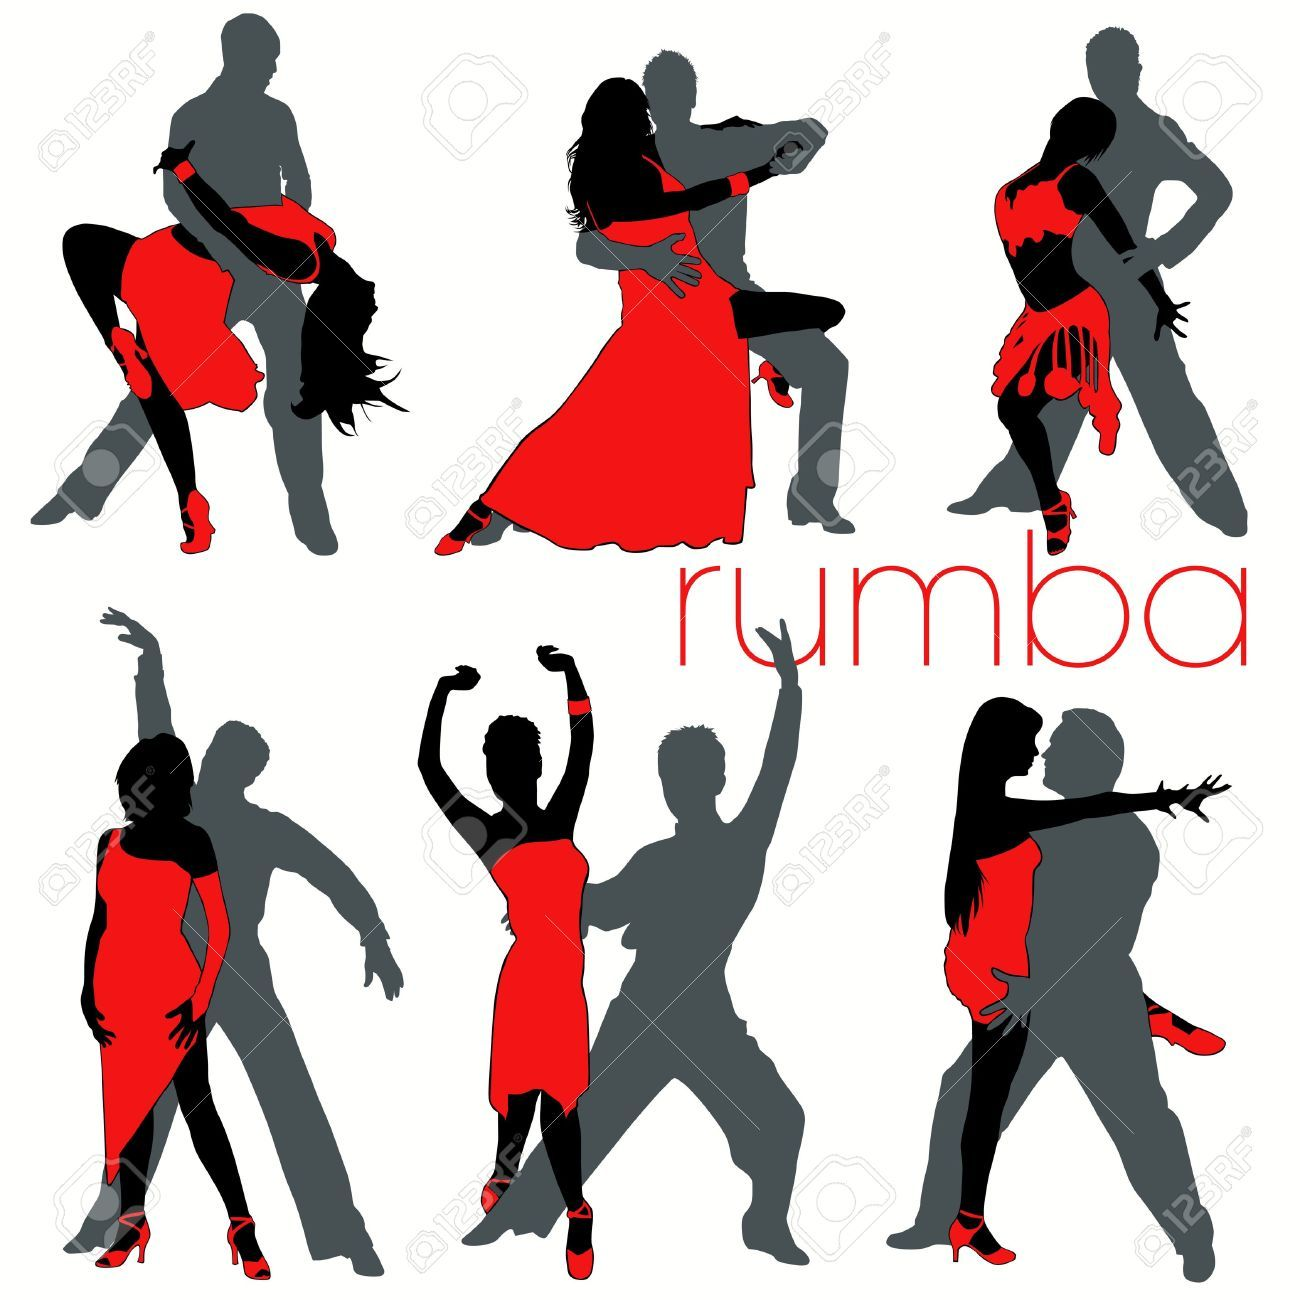 1300x1300 The Term Rumba May Refer To A Variety Of Unrelated Music Styles